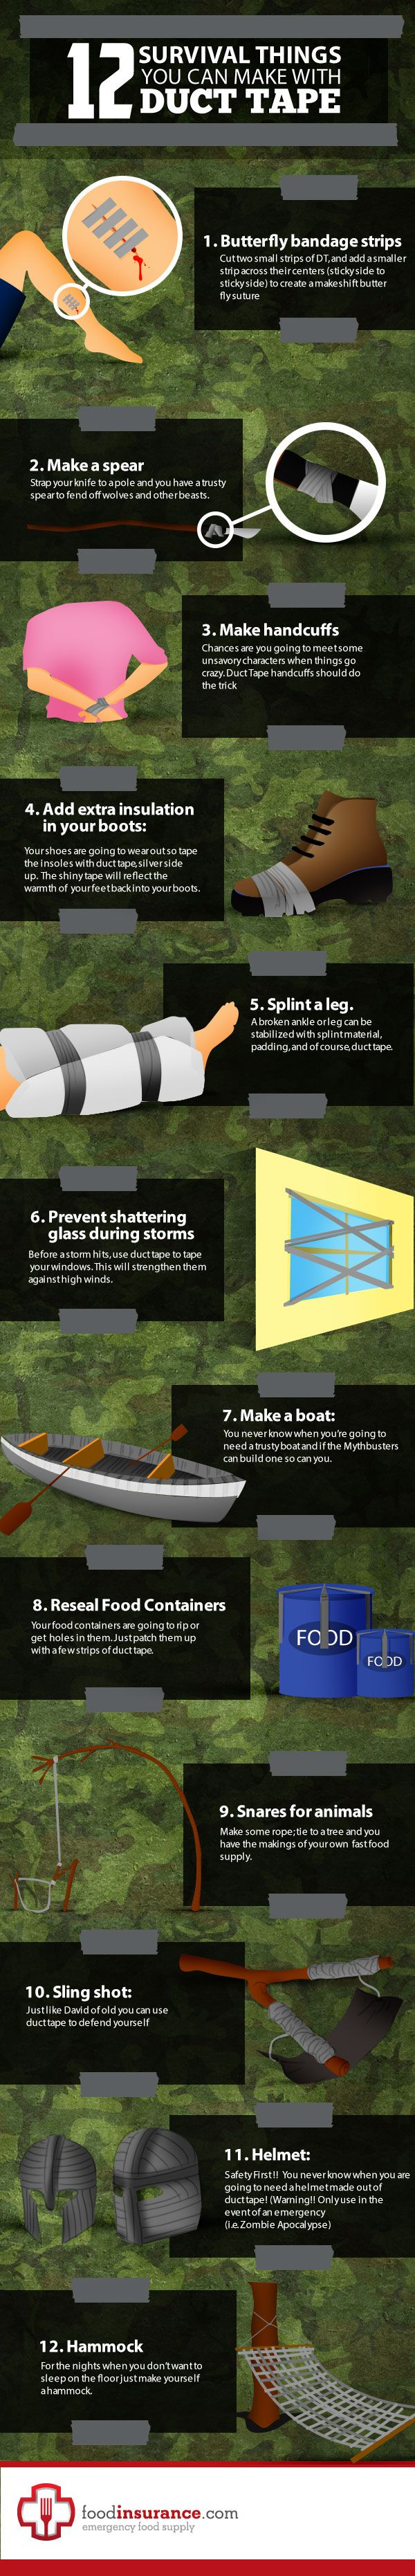 Survival Tools You Can Make Using Duct tape